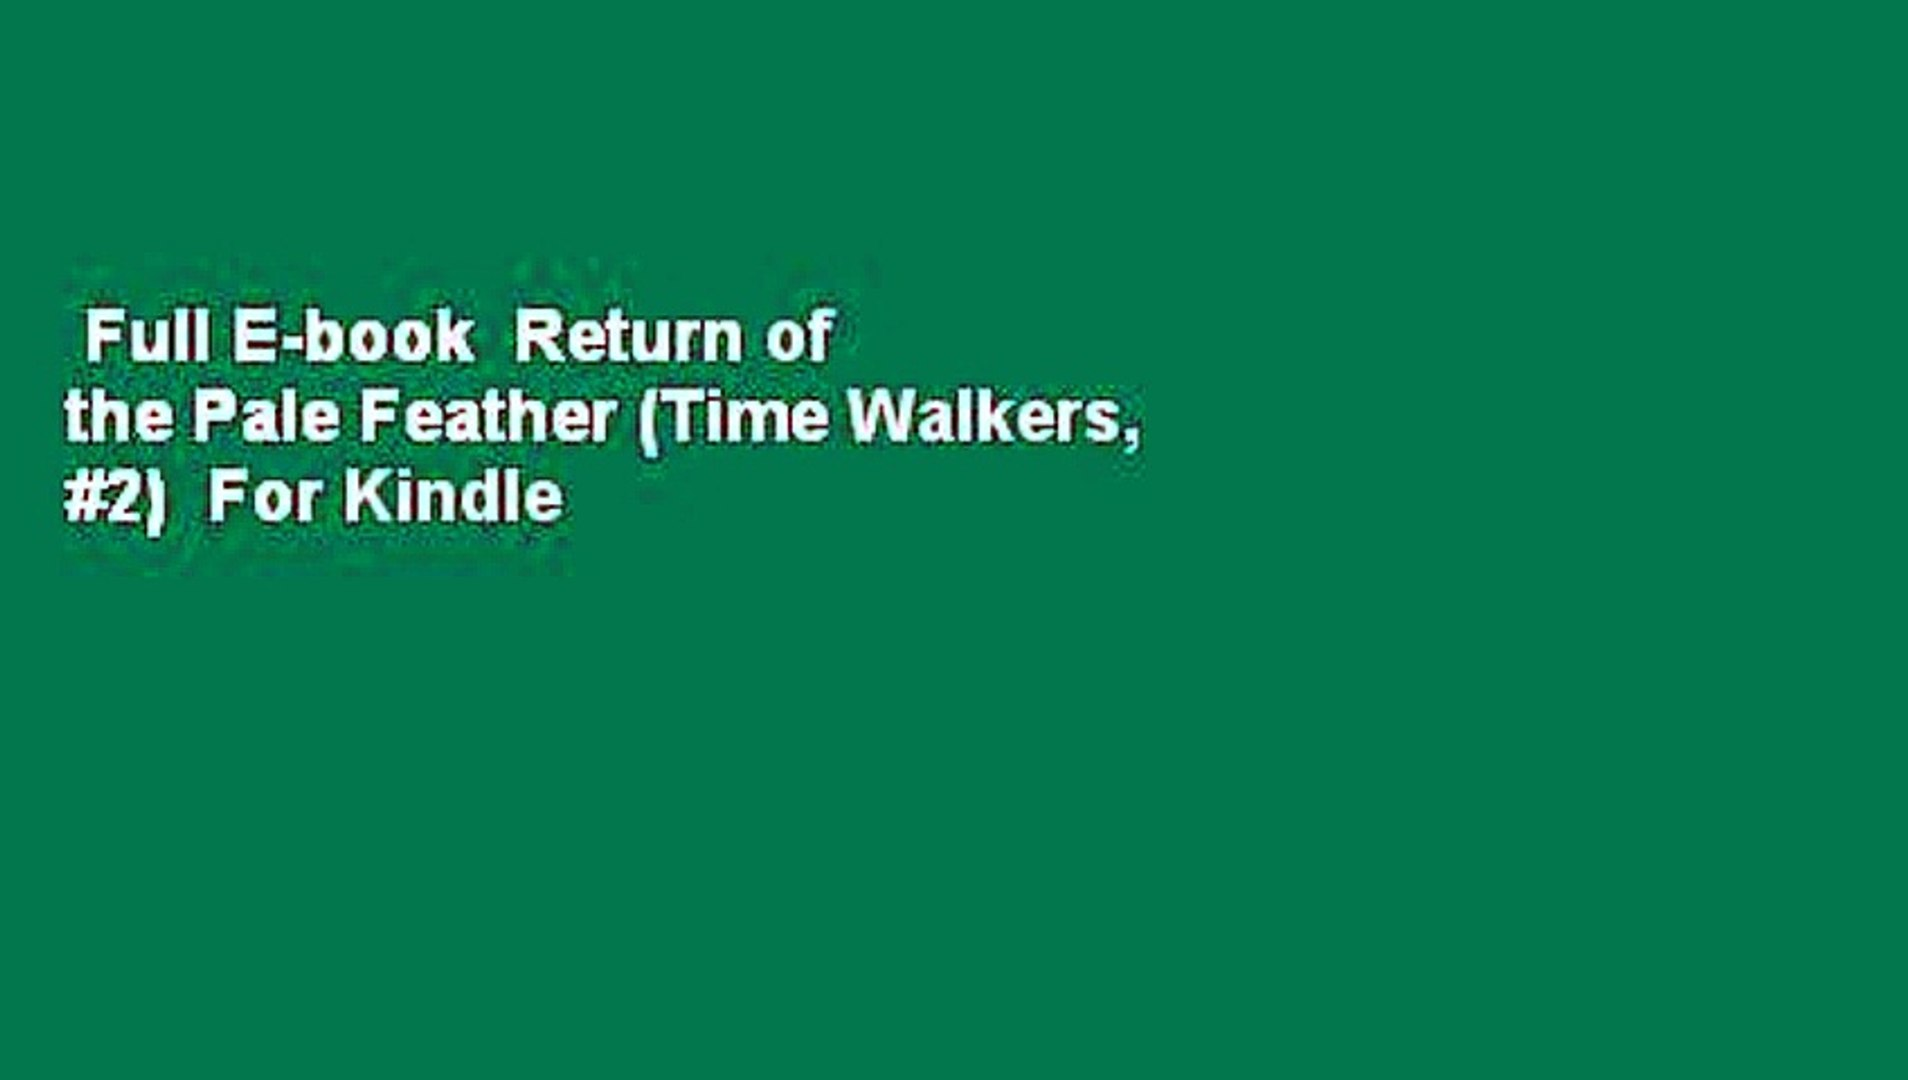 Full E-book  Return of the Pale Feather (Time Walkers, #2)  For Kindle